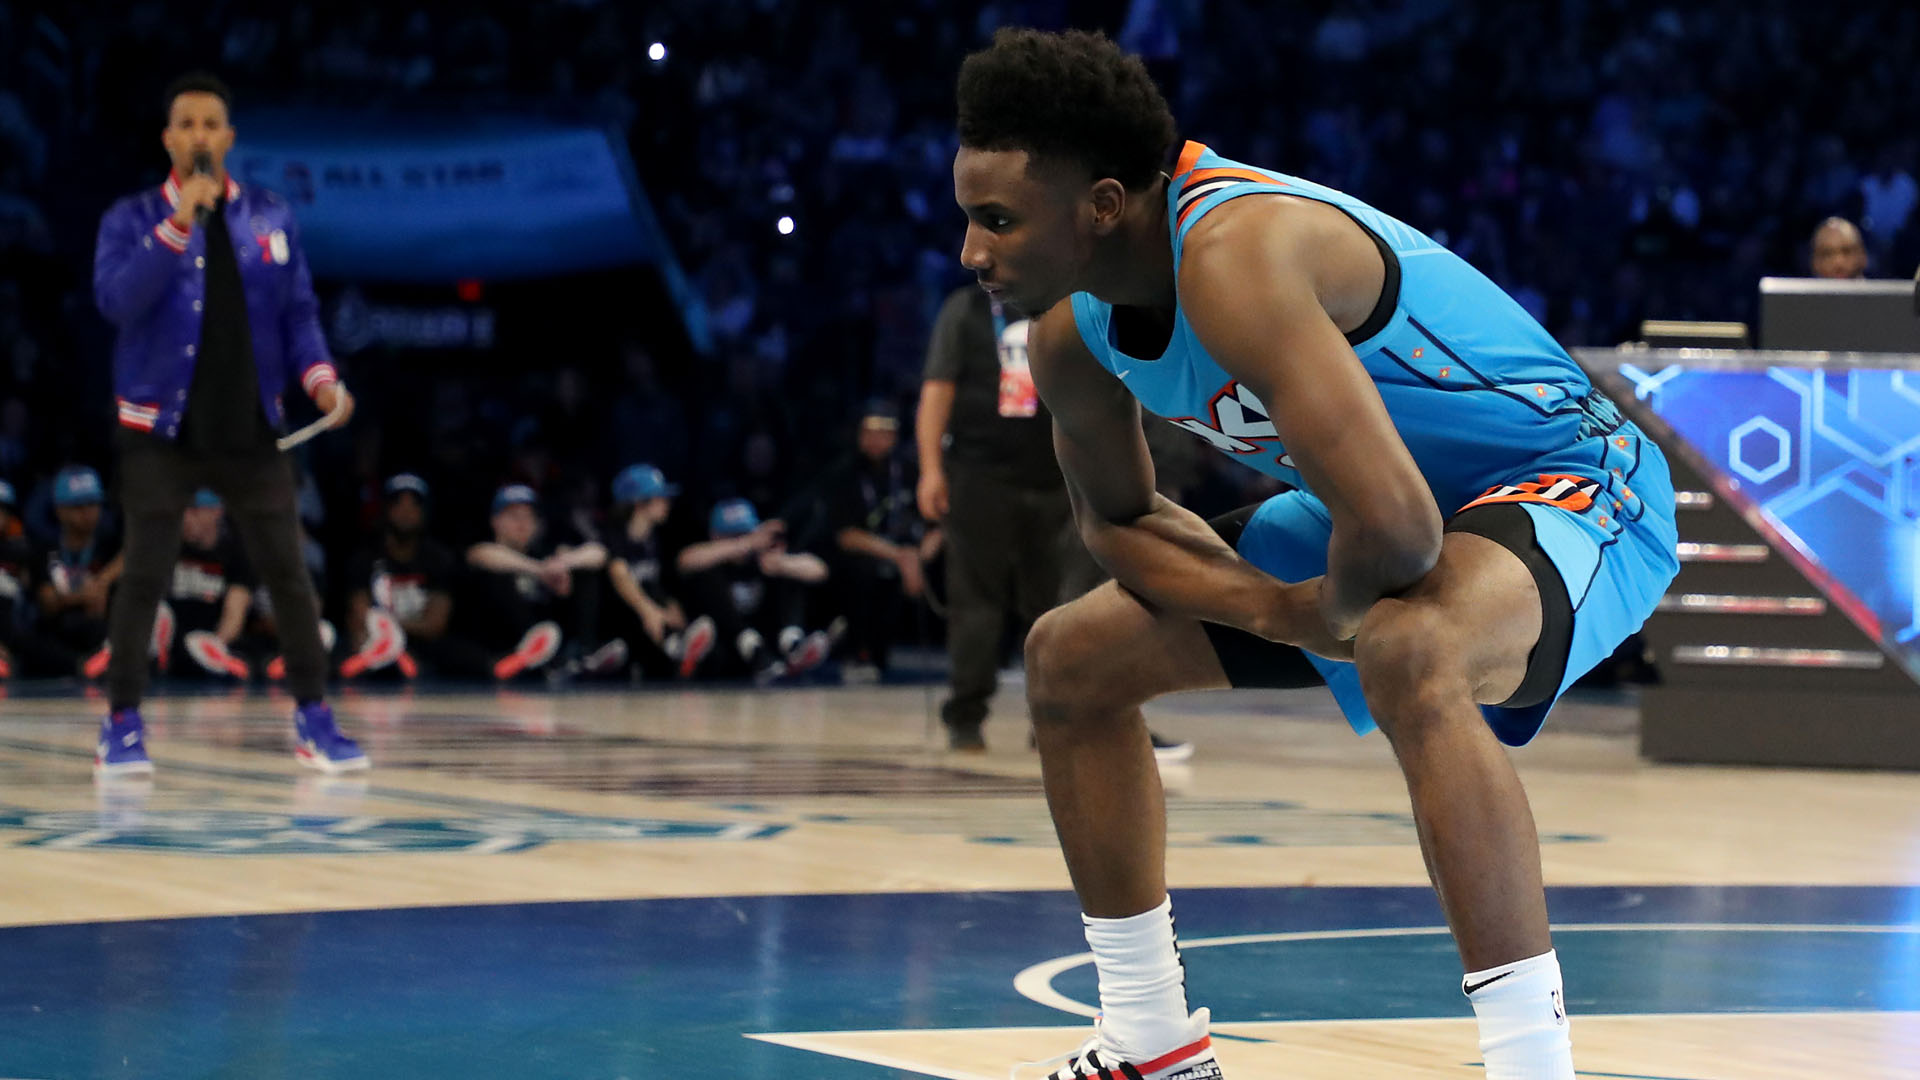 National Basketball Association fans roasted the dunk contest judges over early scores